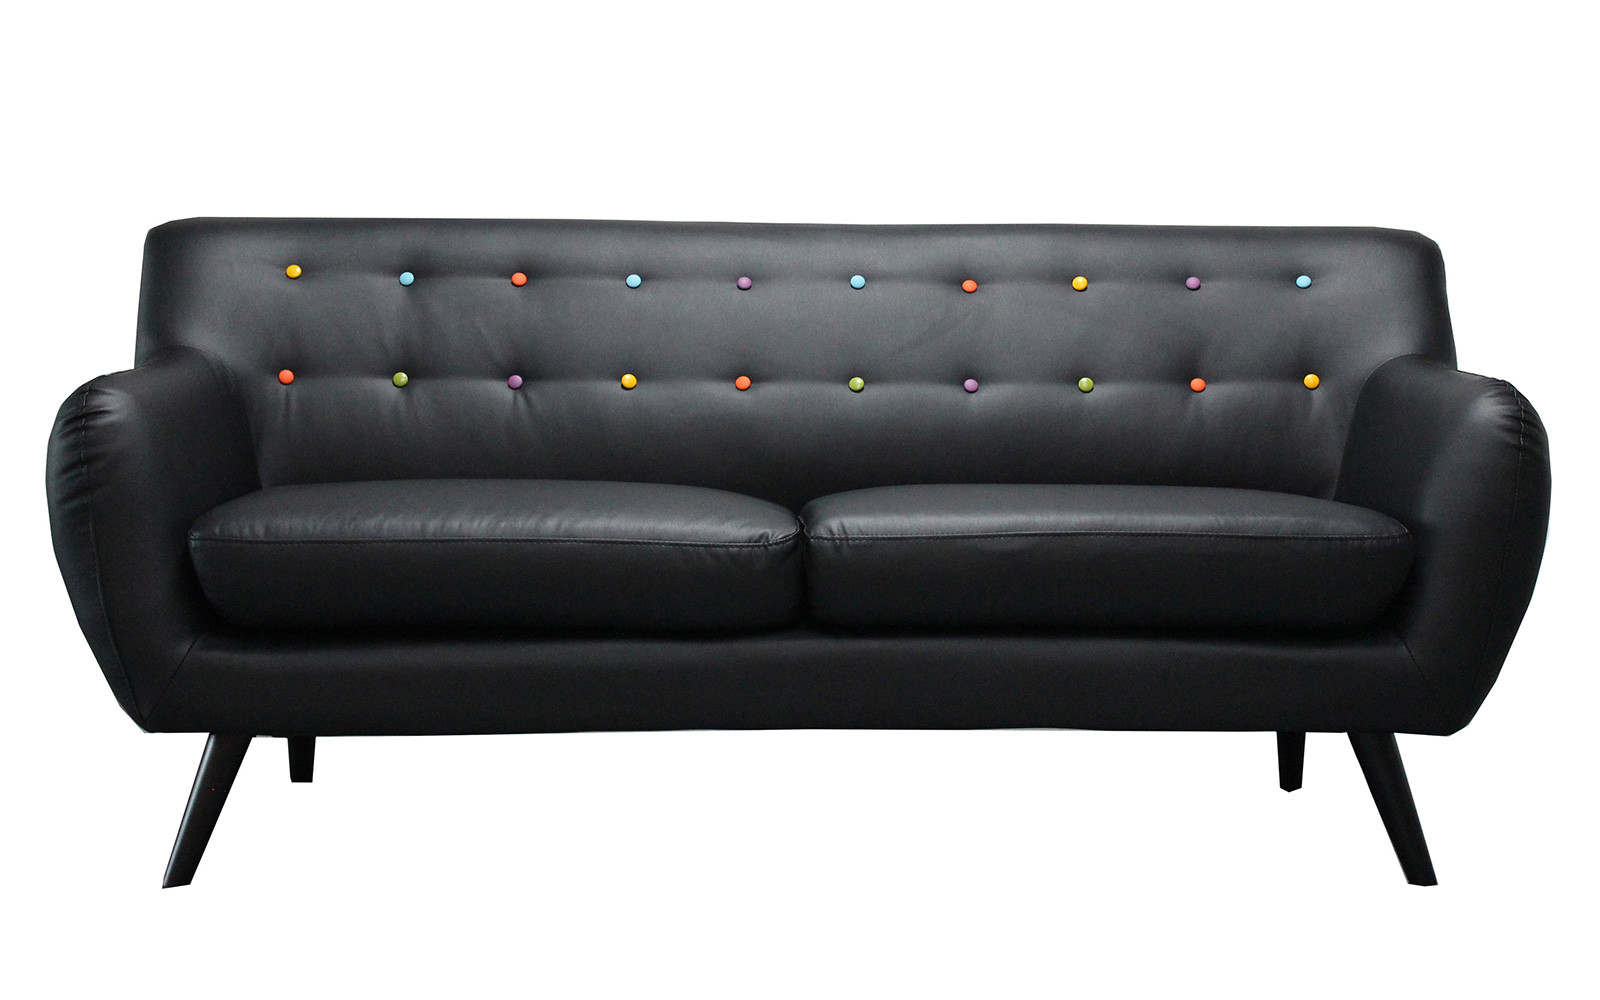 Modern tufted sofa leather sofa menzilperde net for Tufted leather sleeper sofa